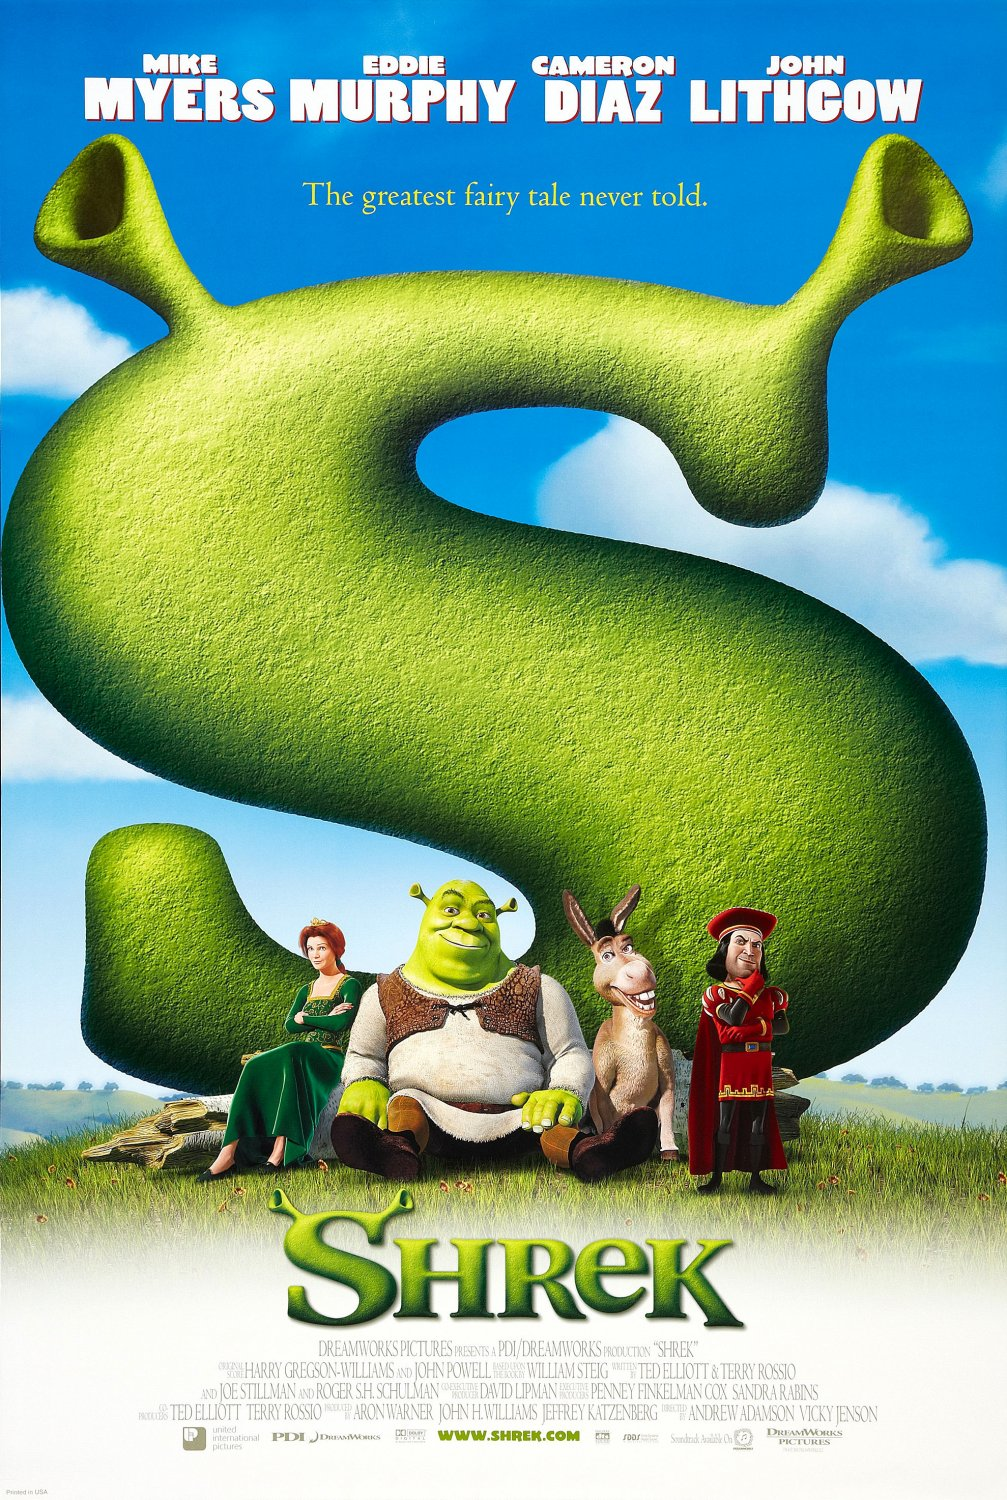 Bilderesultat for shrek 1